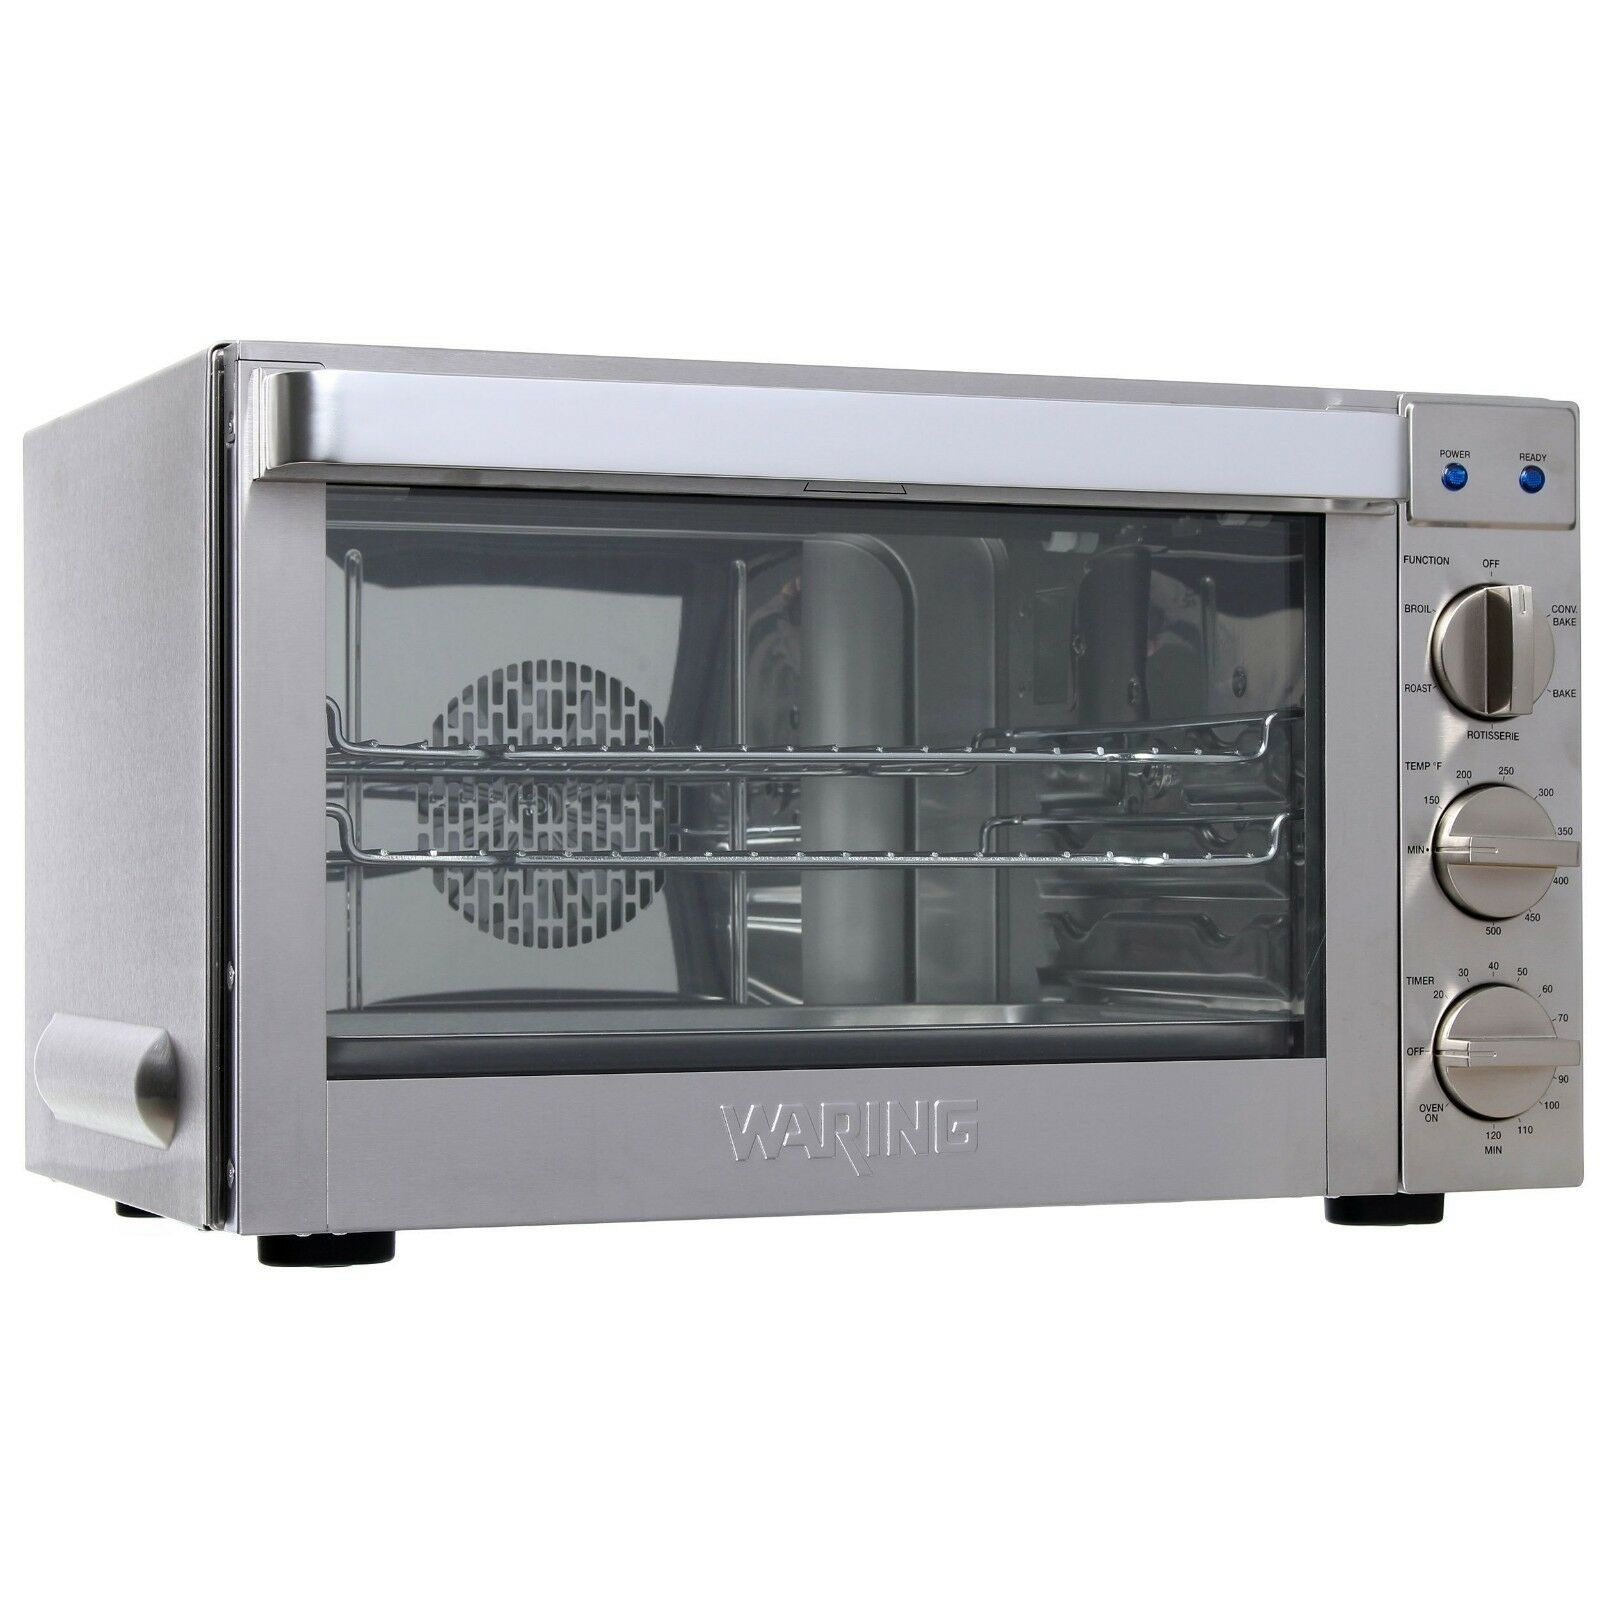 Waring Commercial CO1600WR Commercial Oven 1.5 Cubic foot Co